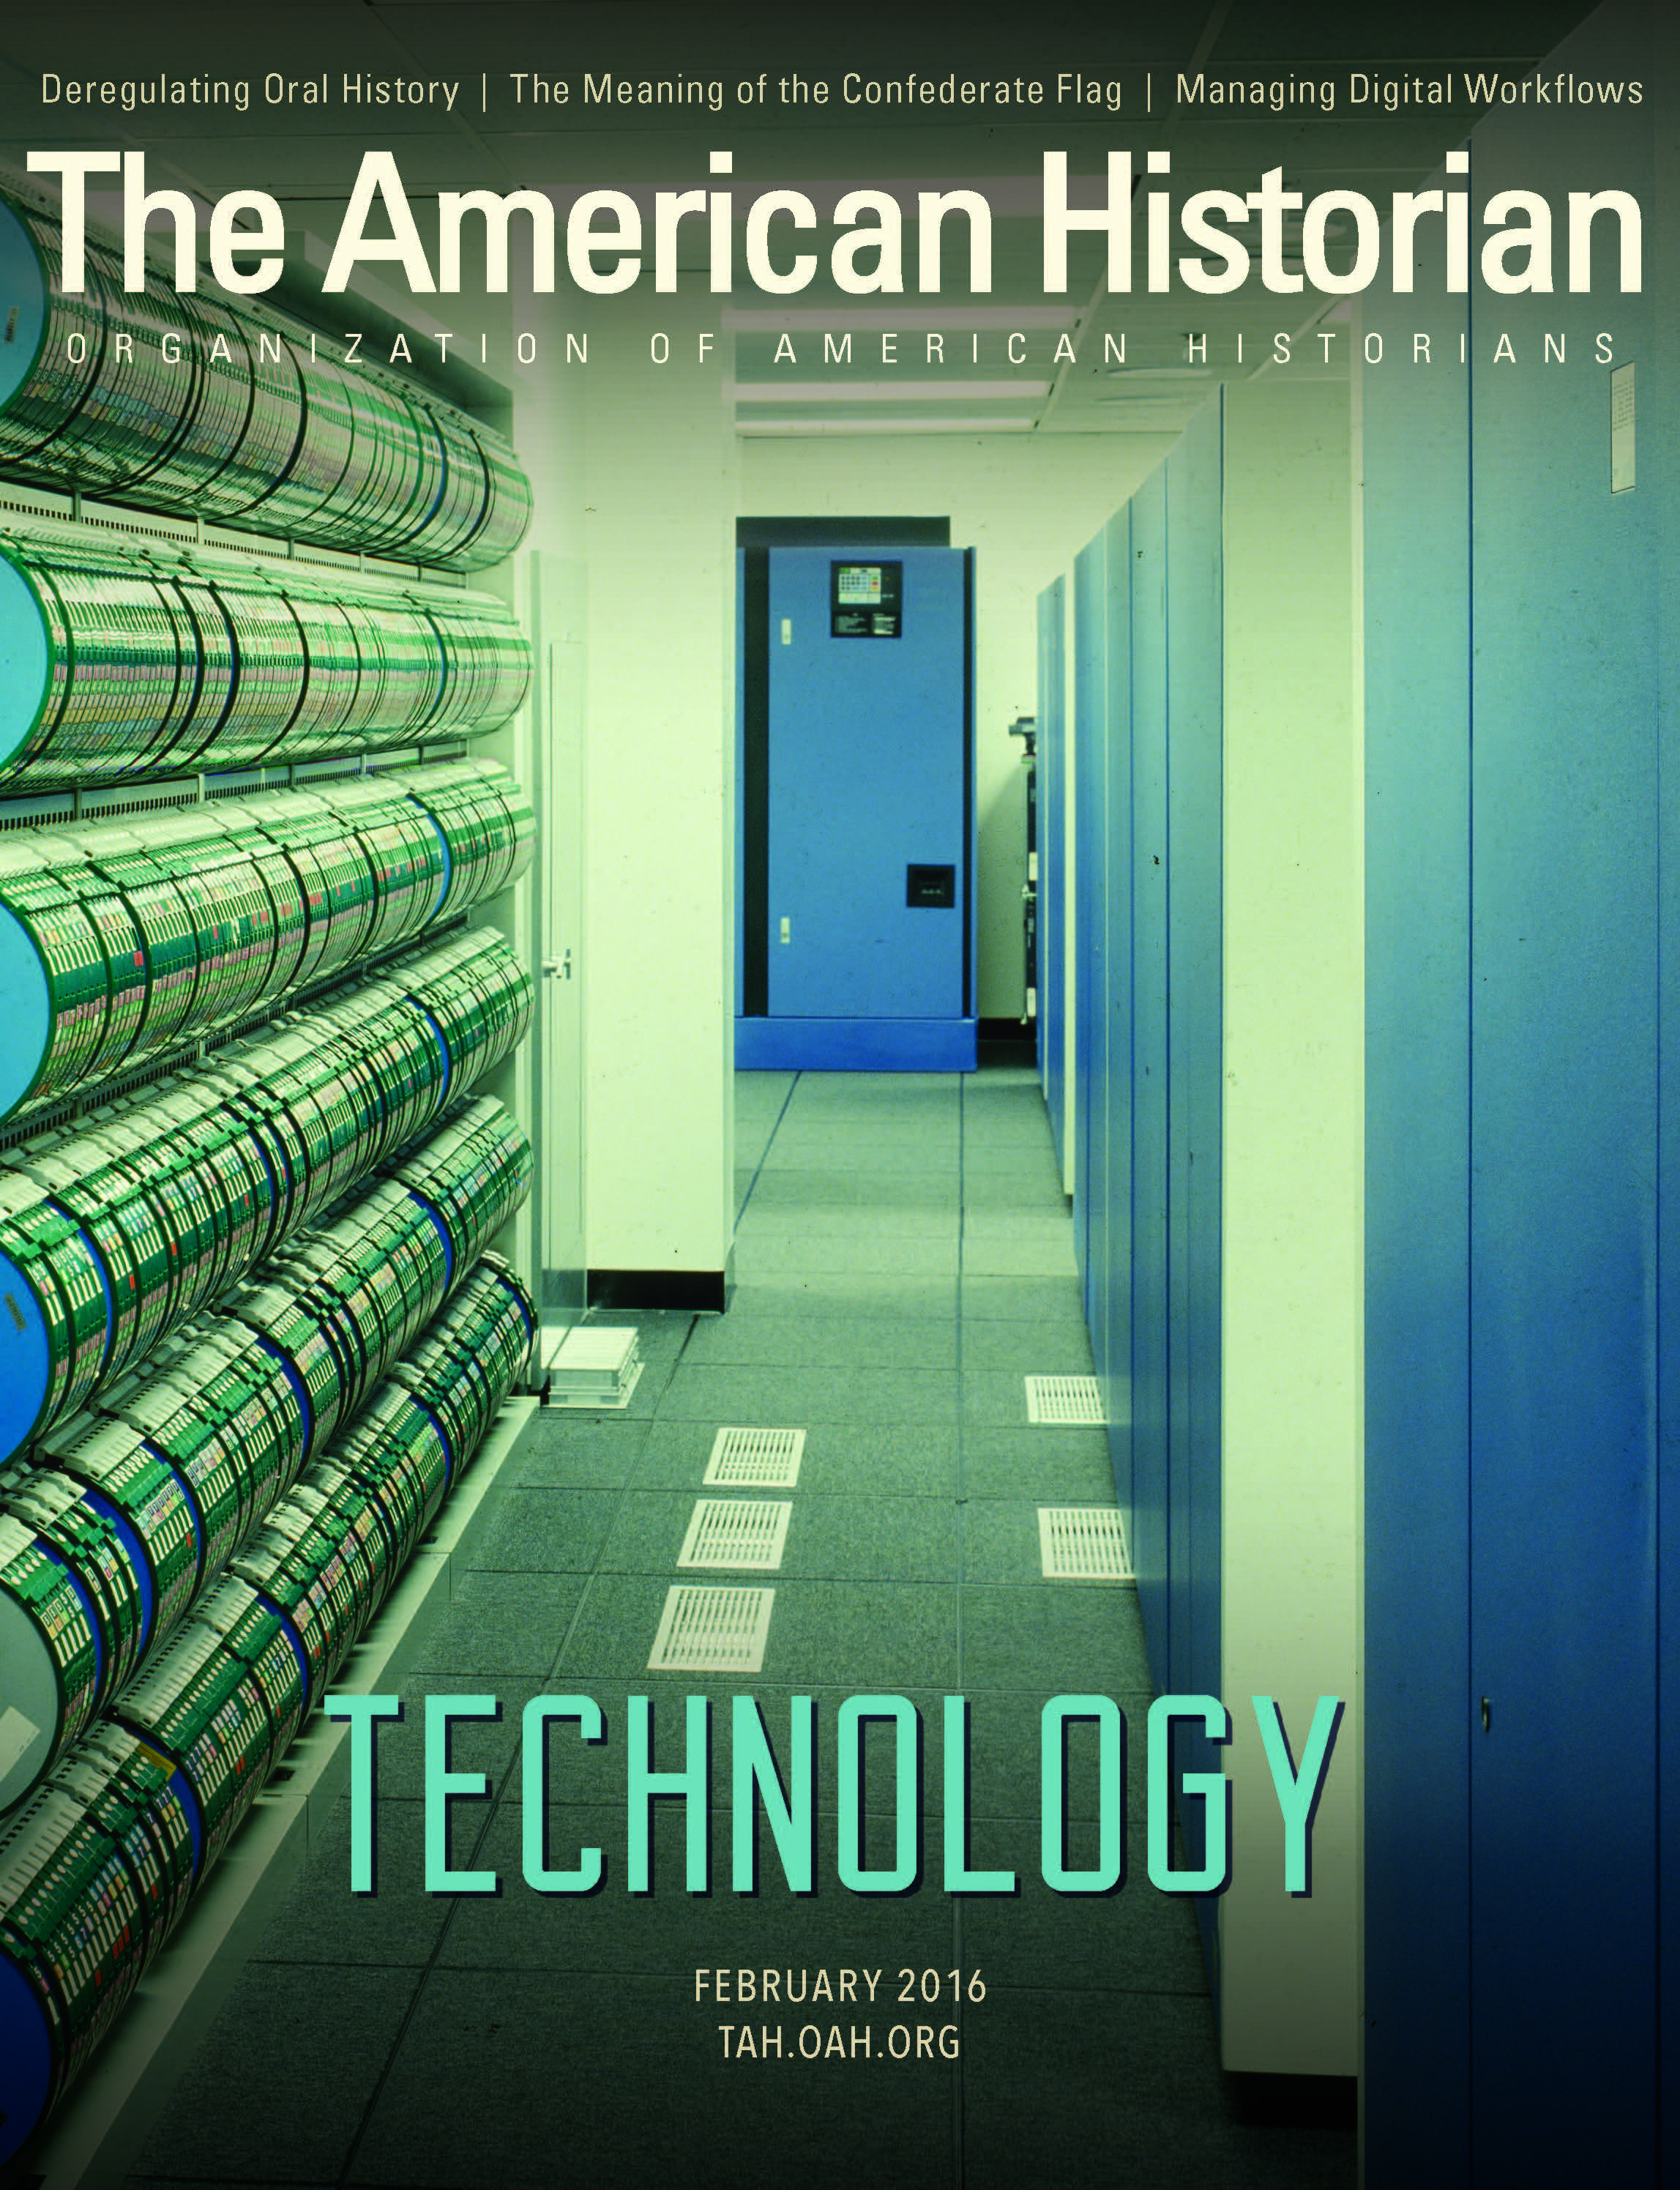 Cover of the February 2016 issue of The American Historian